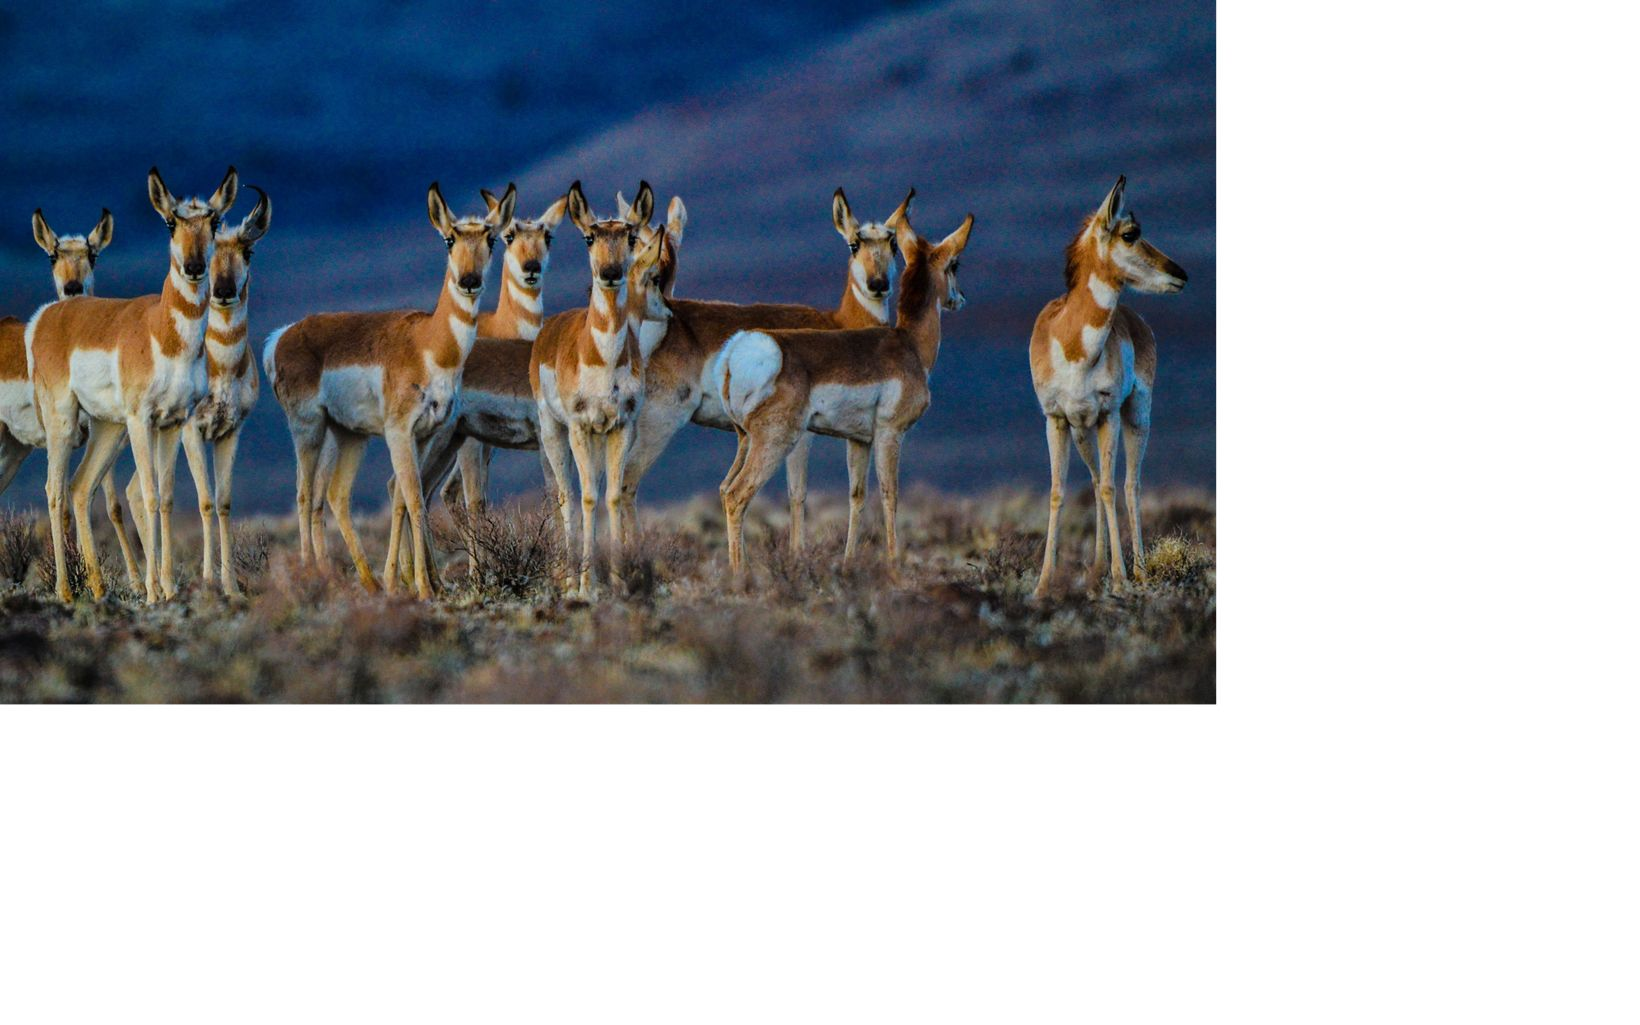 Pronghorn antelope are often found in and around the ranch